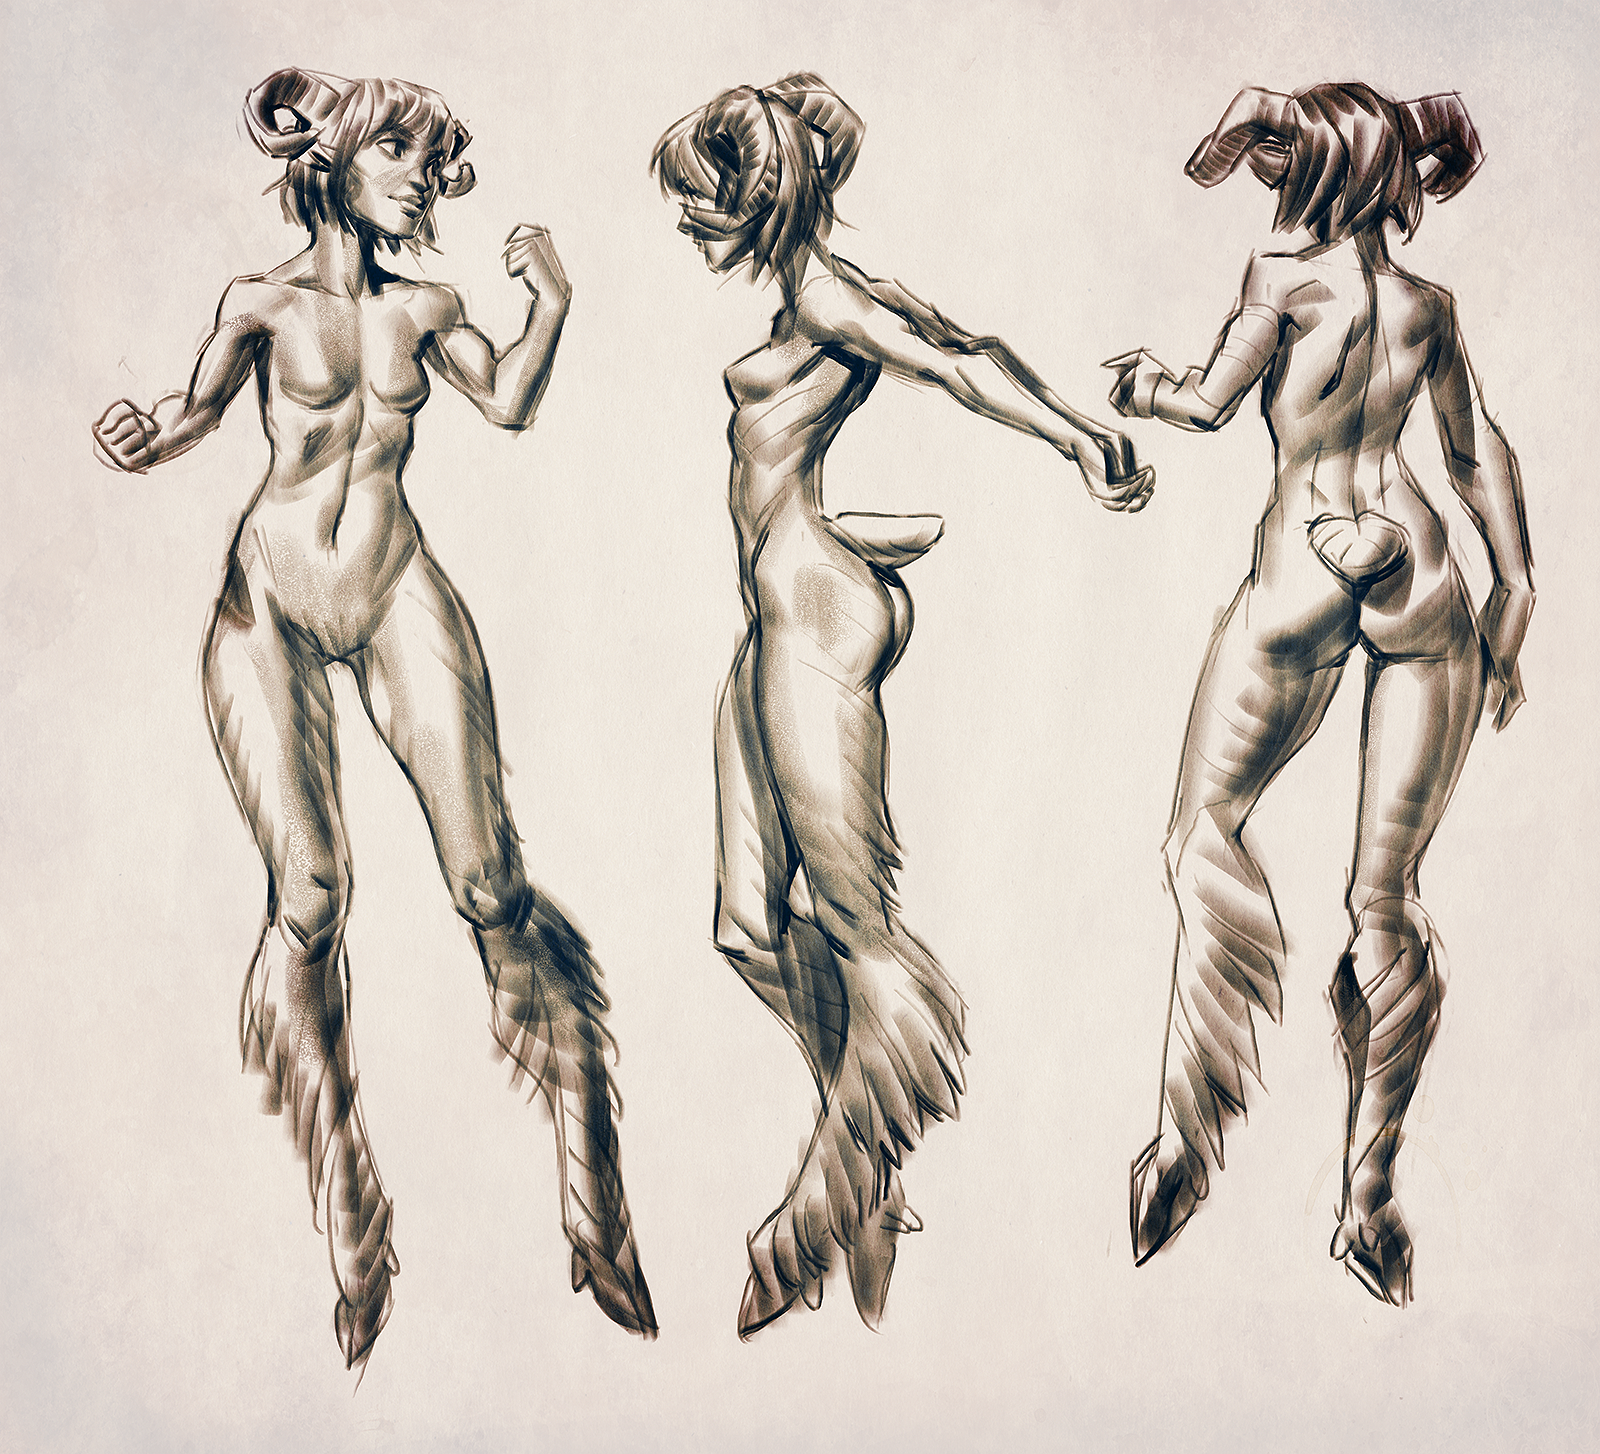 09-18-2014 Puckette 3.0 Anatomy by Makkon